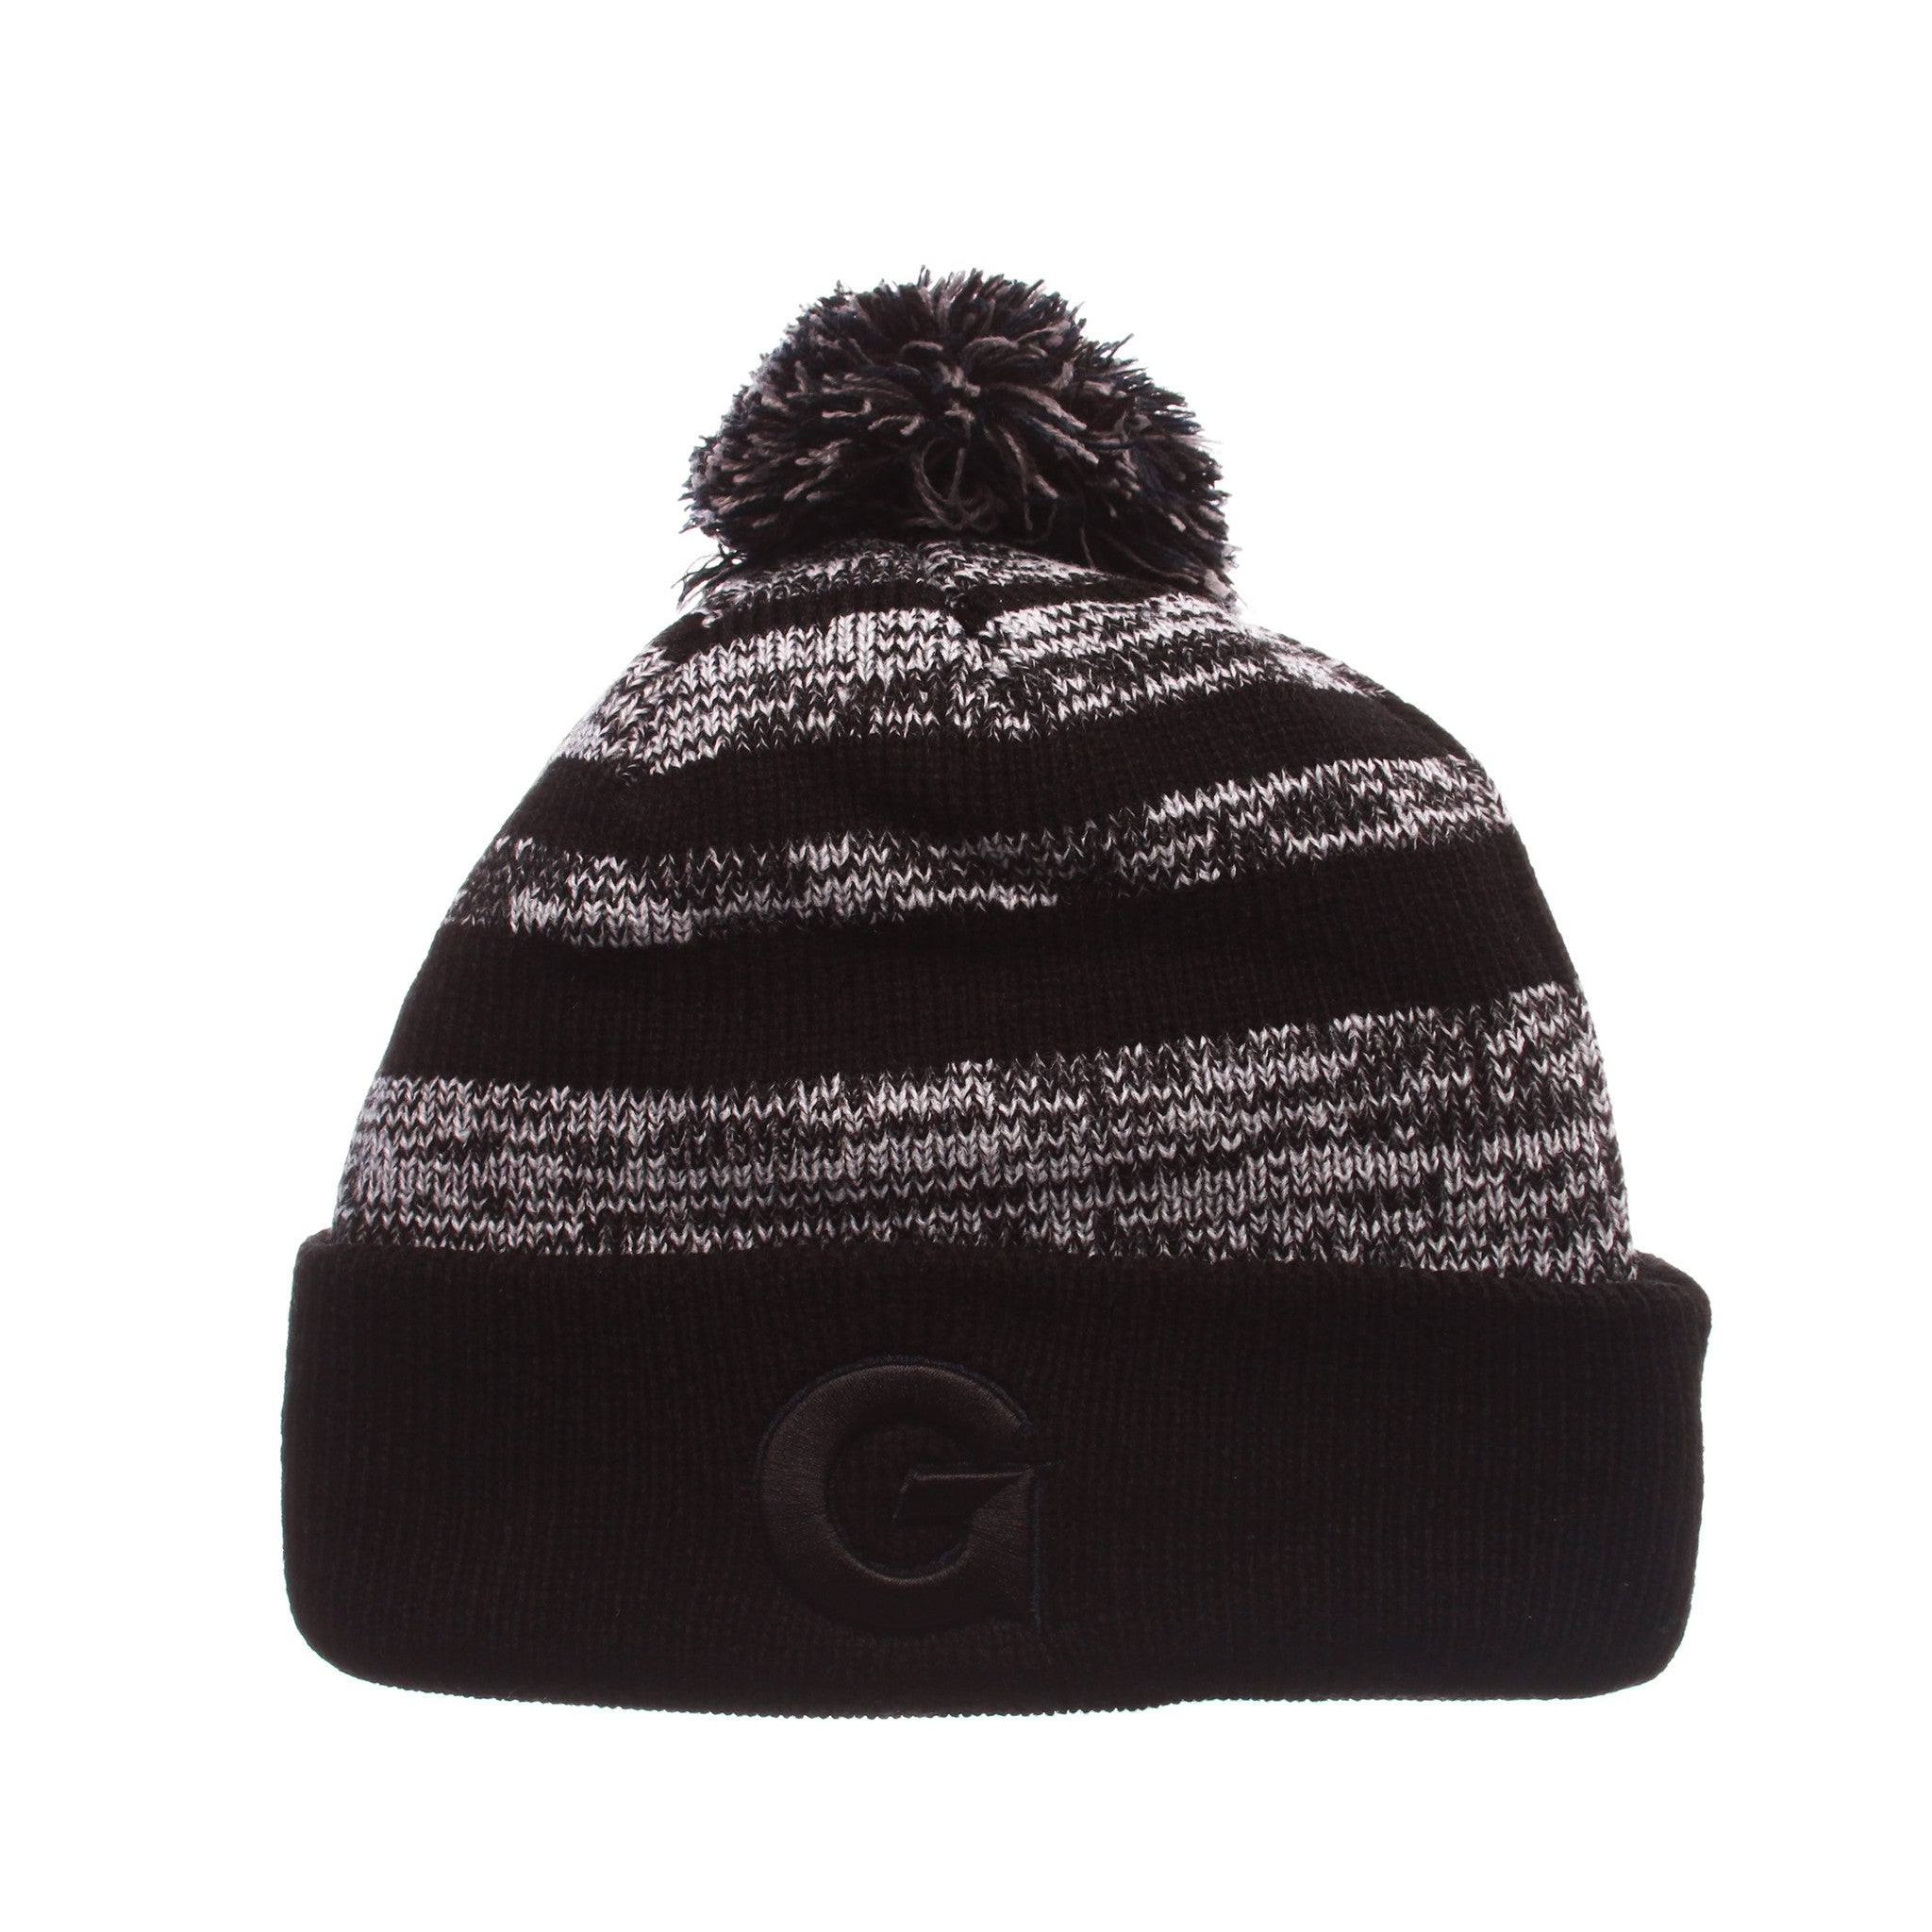 Georgetown University Black Baron Knit (Fold) (G) Black/White/Gray Confederate Knit Adjustable hats by Zephyr